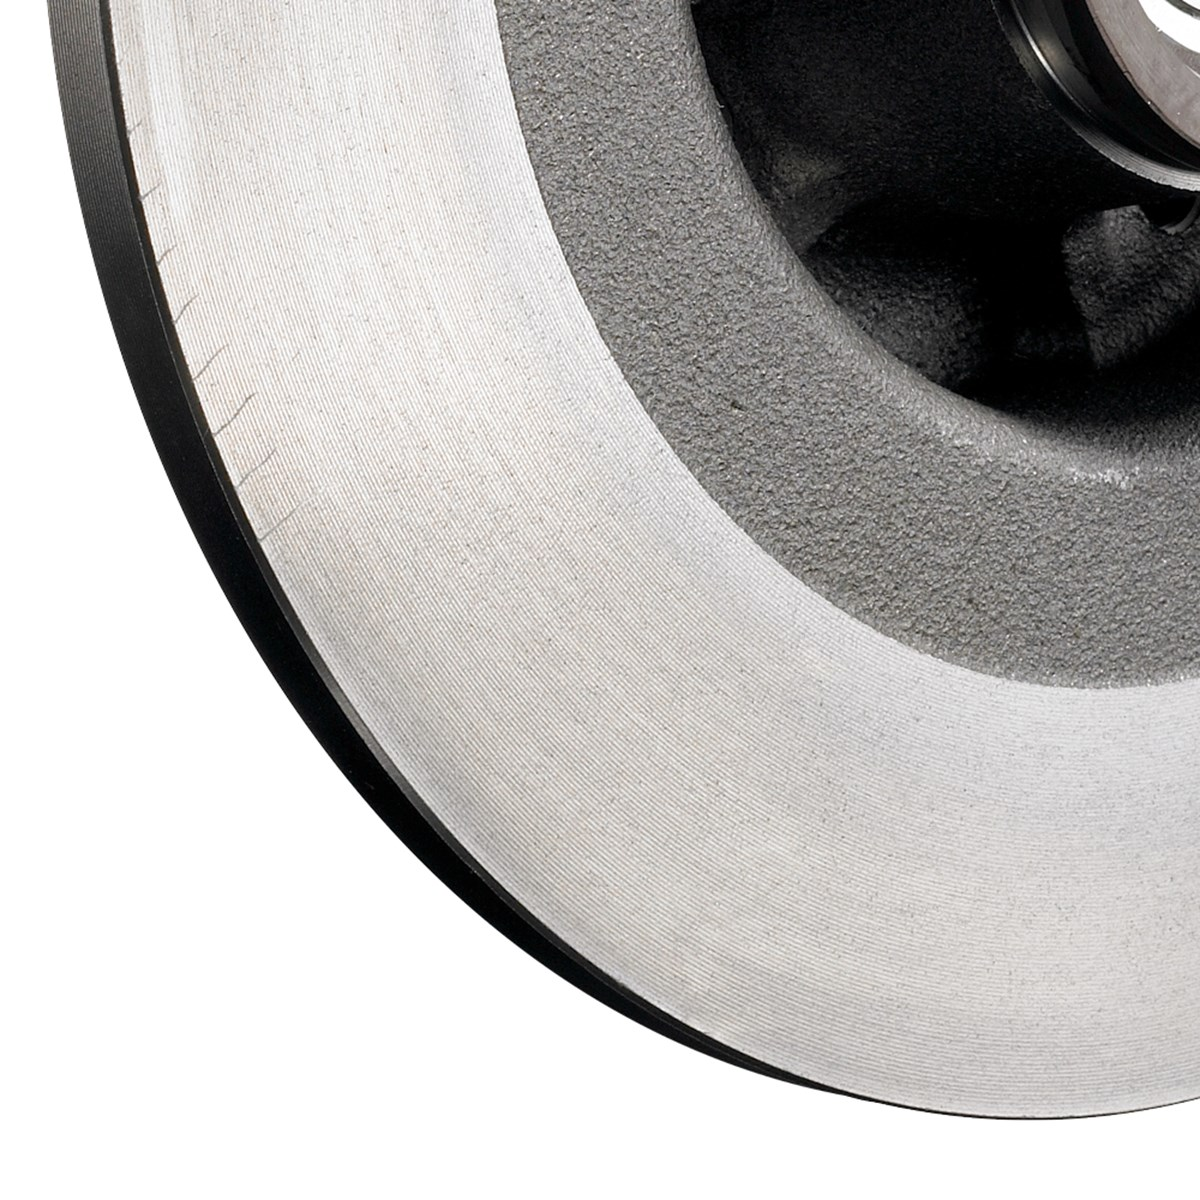 Brake discs with integrated wheel bearings - detail view